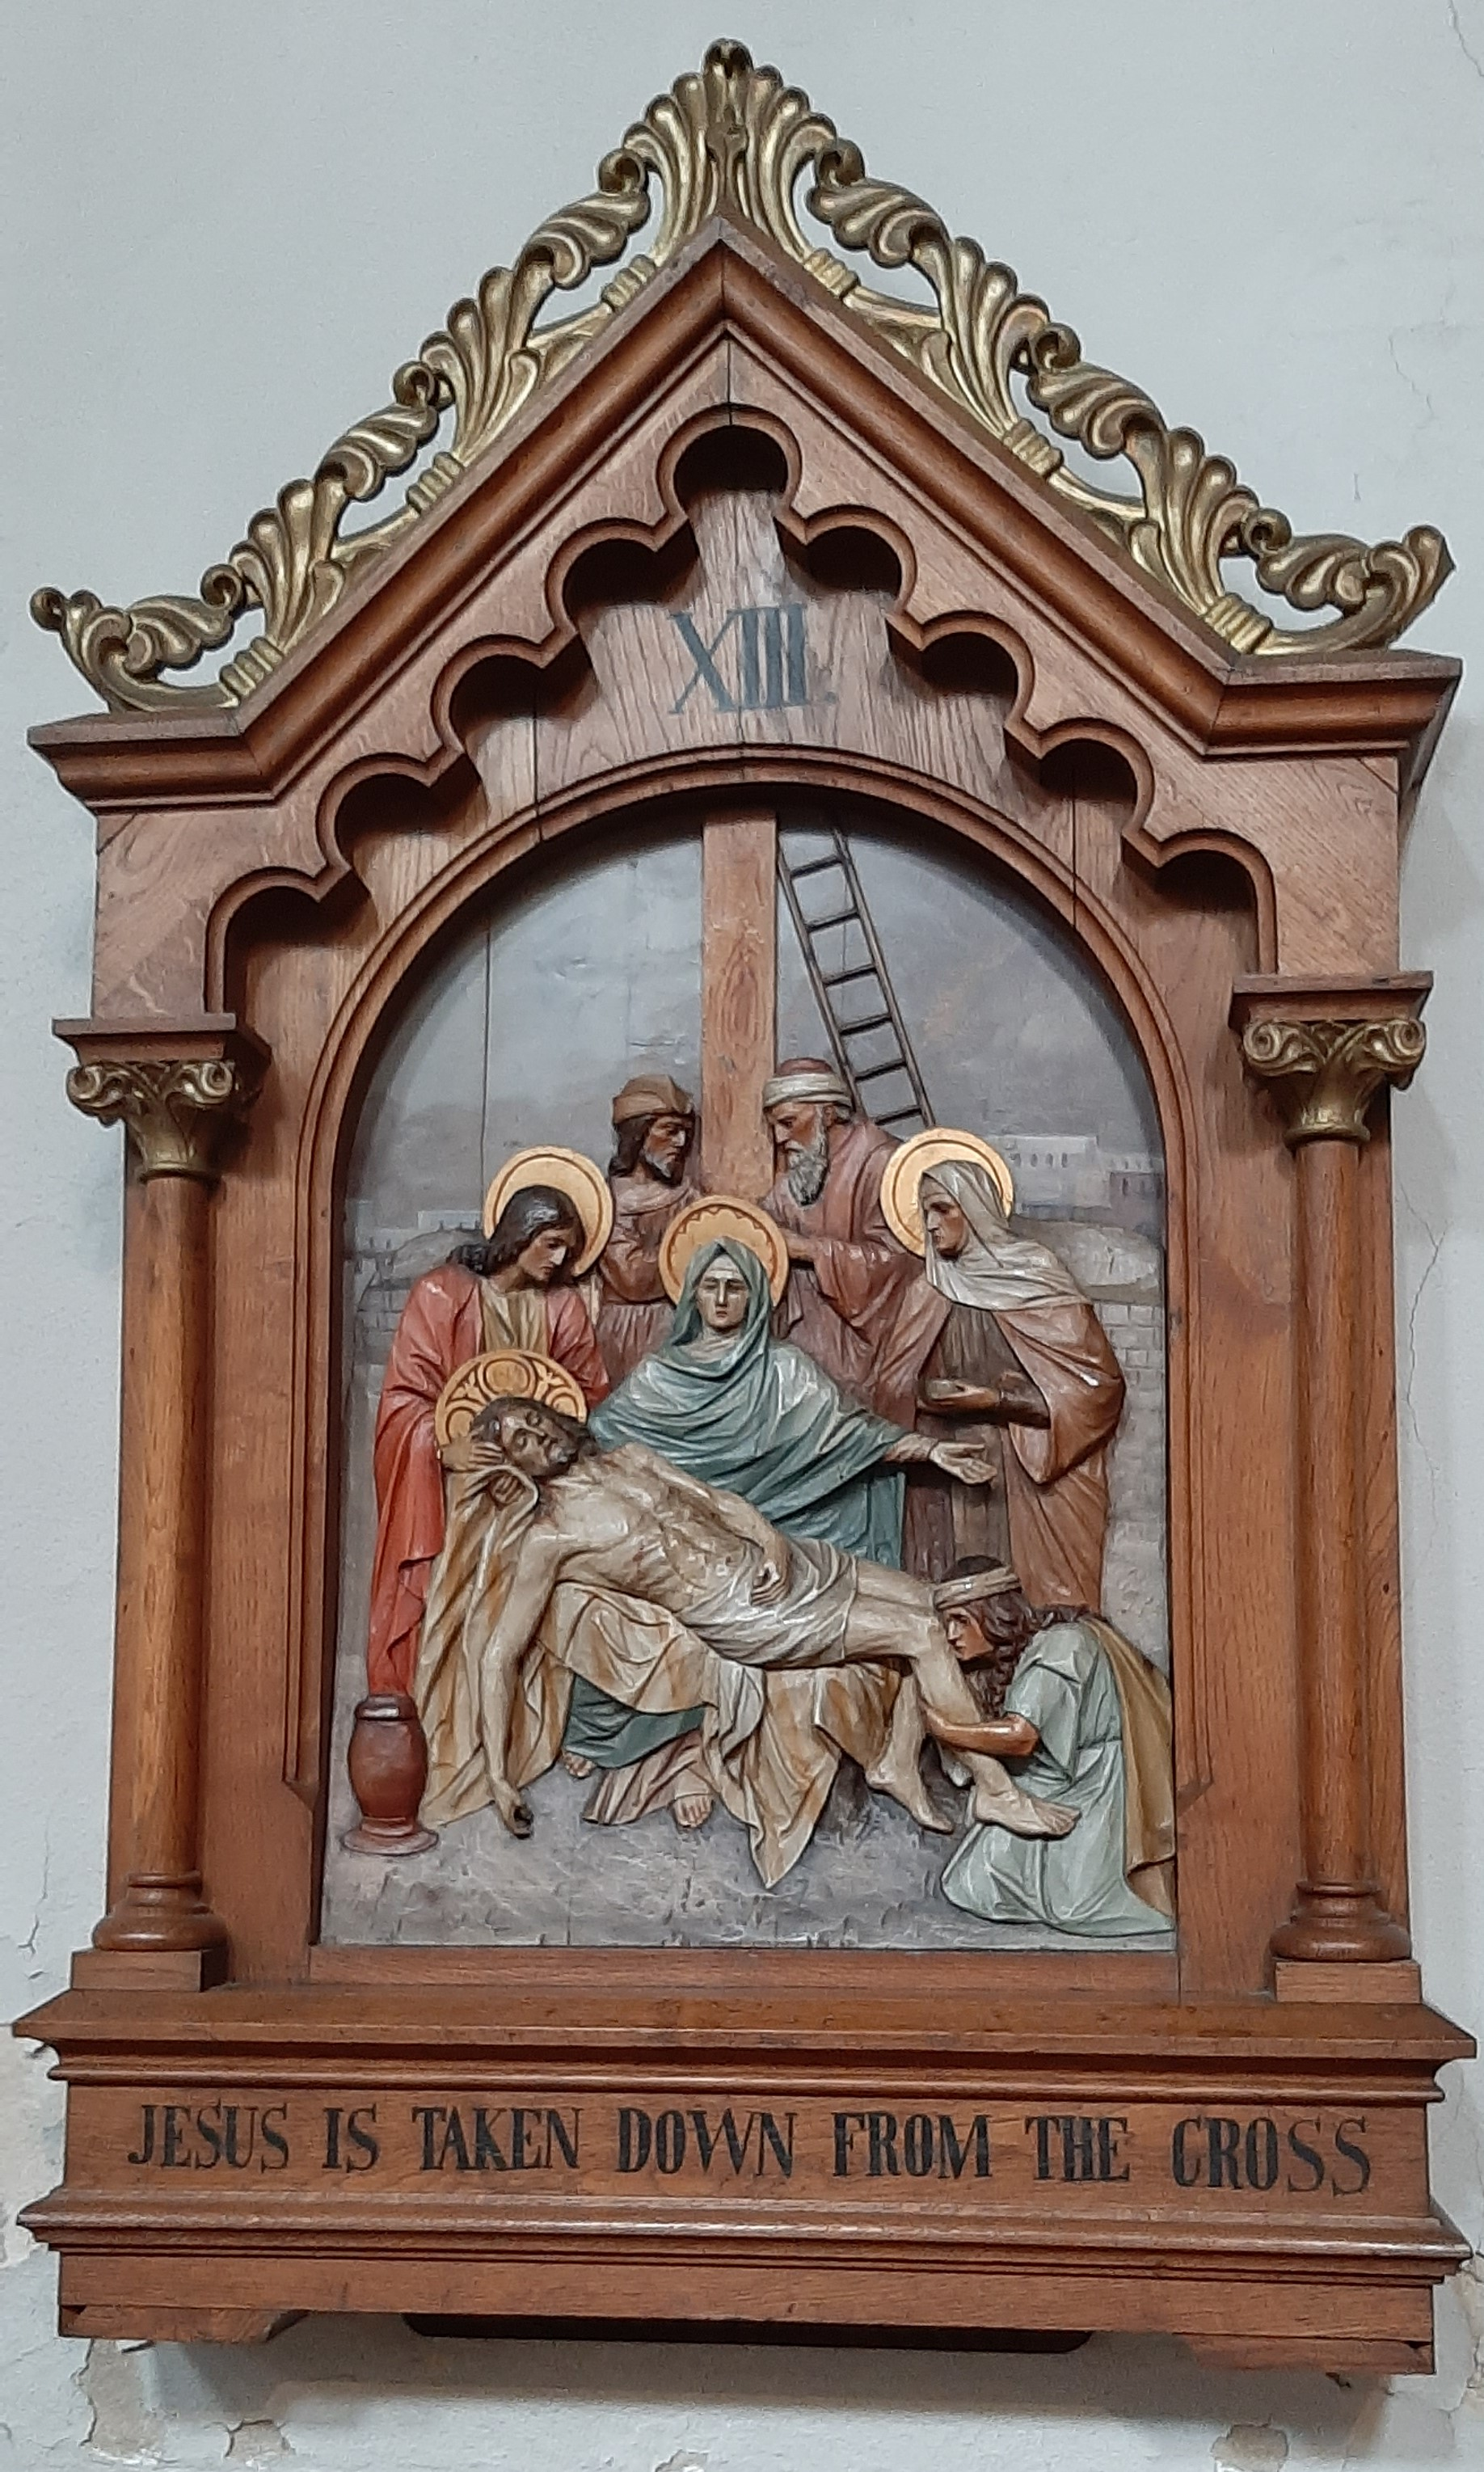 Fourteenth Station: Jesus is laid in the tomb.